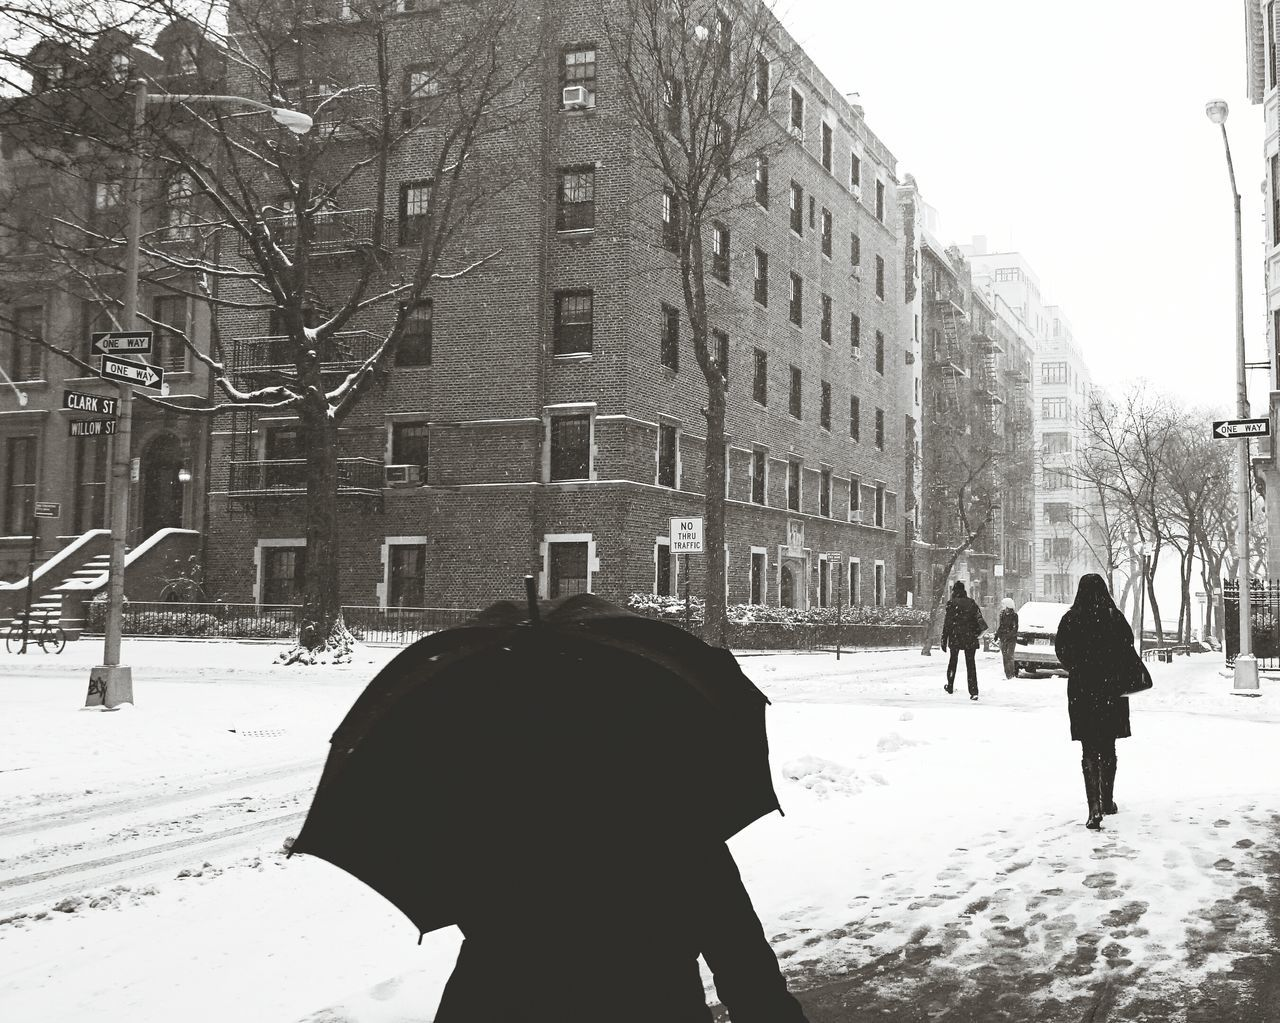 Blizzard In NYC How's The Weather Today? Check This Out Blizzard Juno Winter Blackandwhite Bwphotography Monochrome Snow NYC Photography